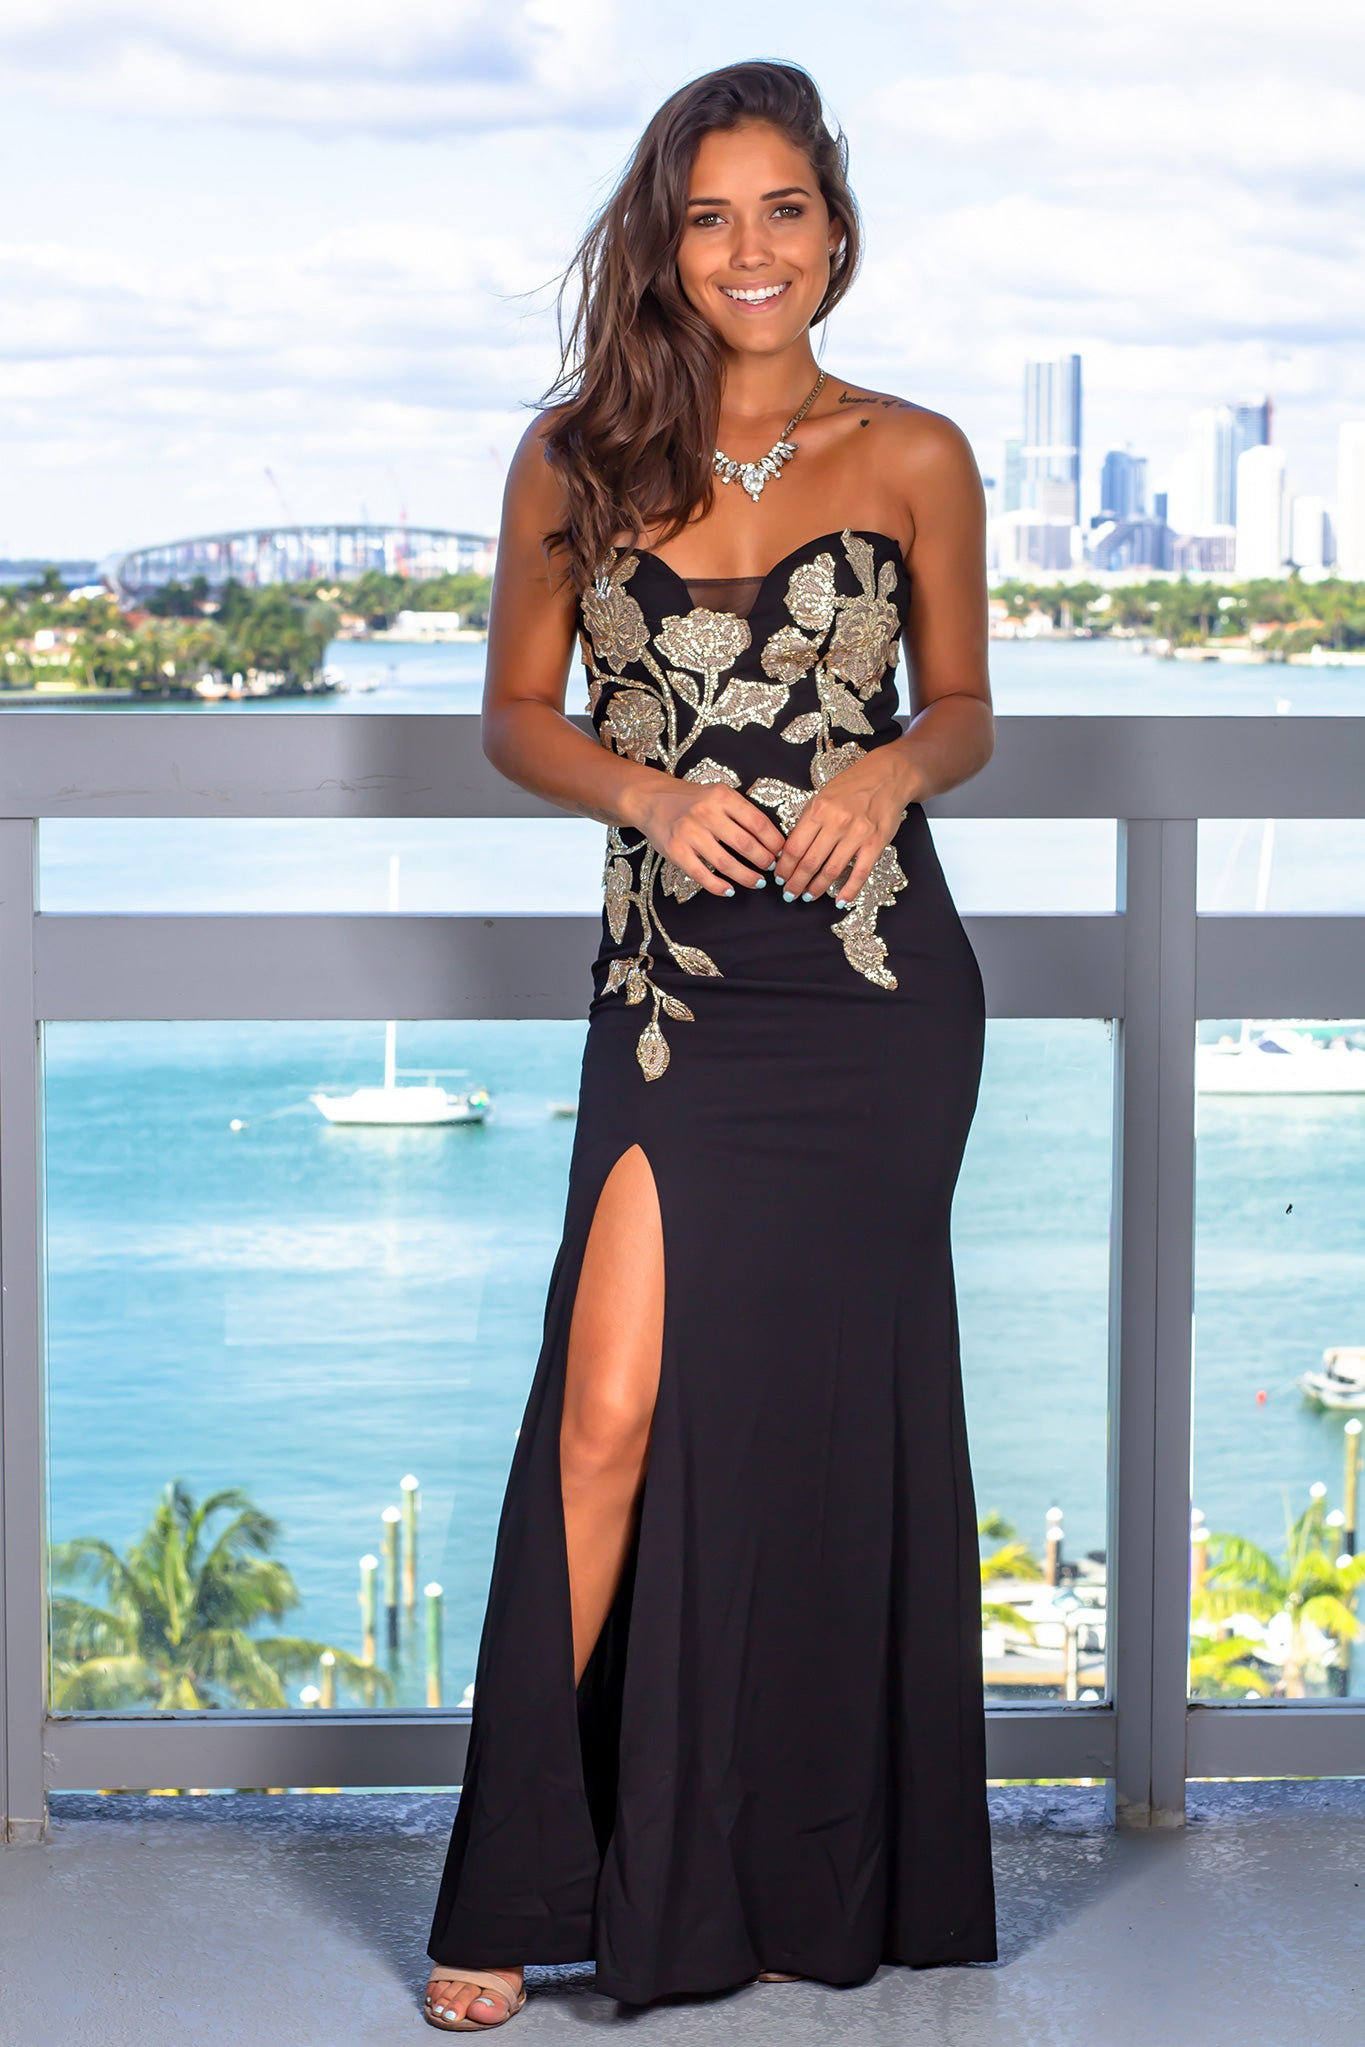 Black Strapless Maxi Dress with Gold Detail